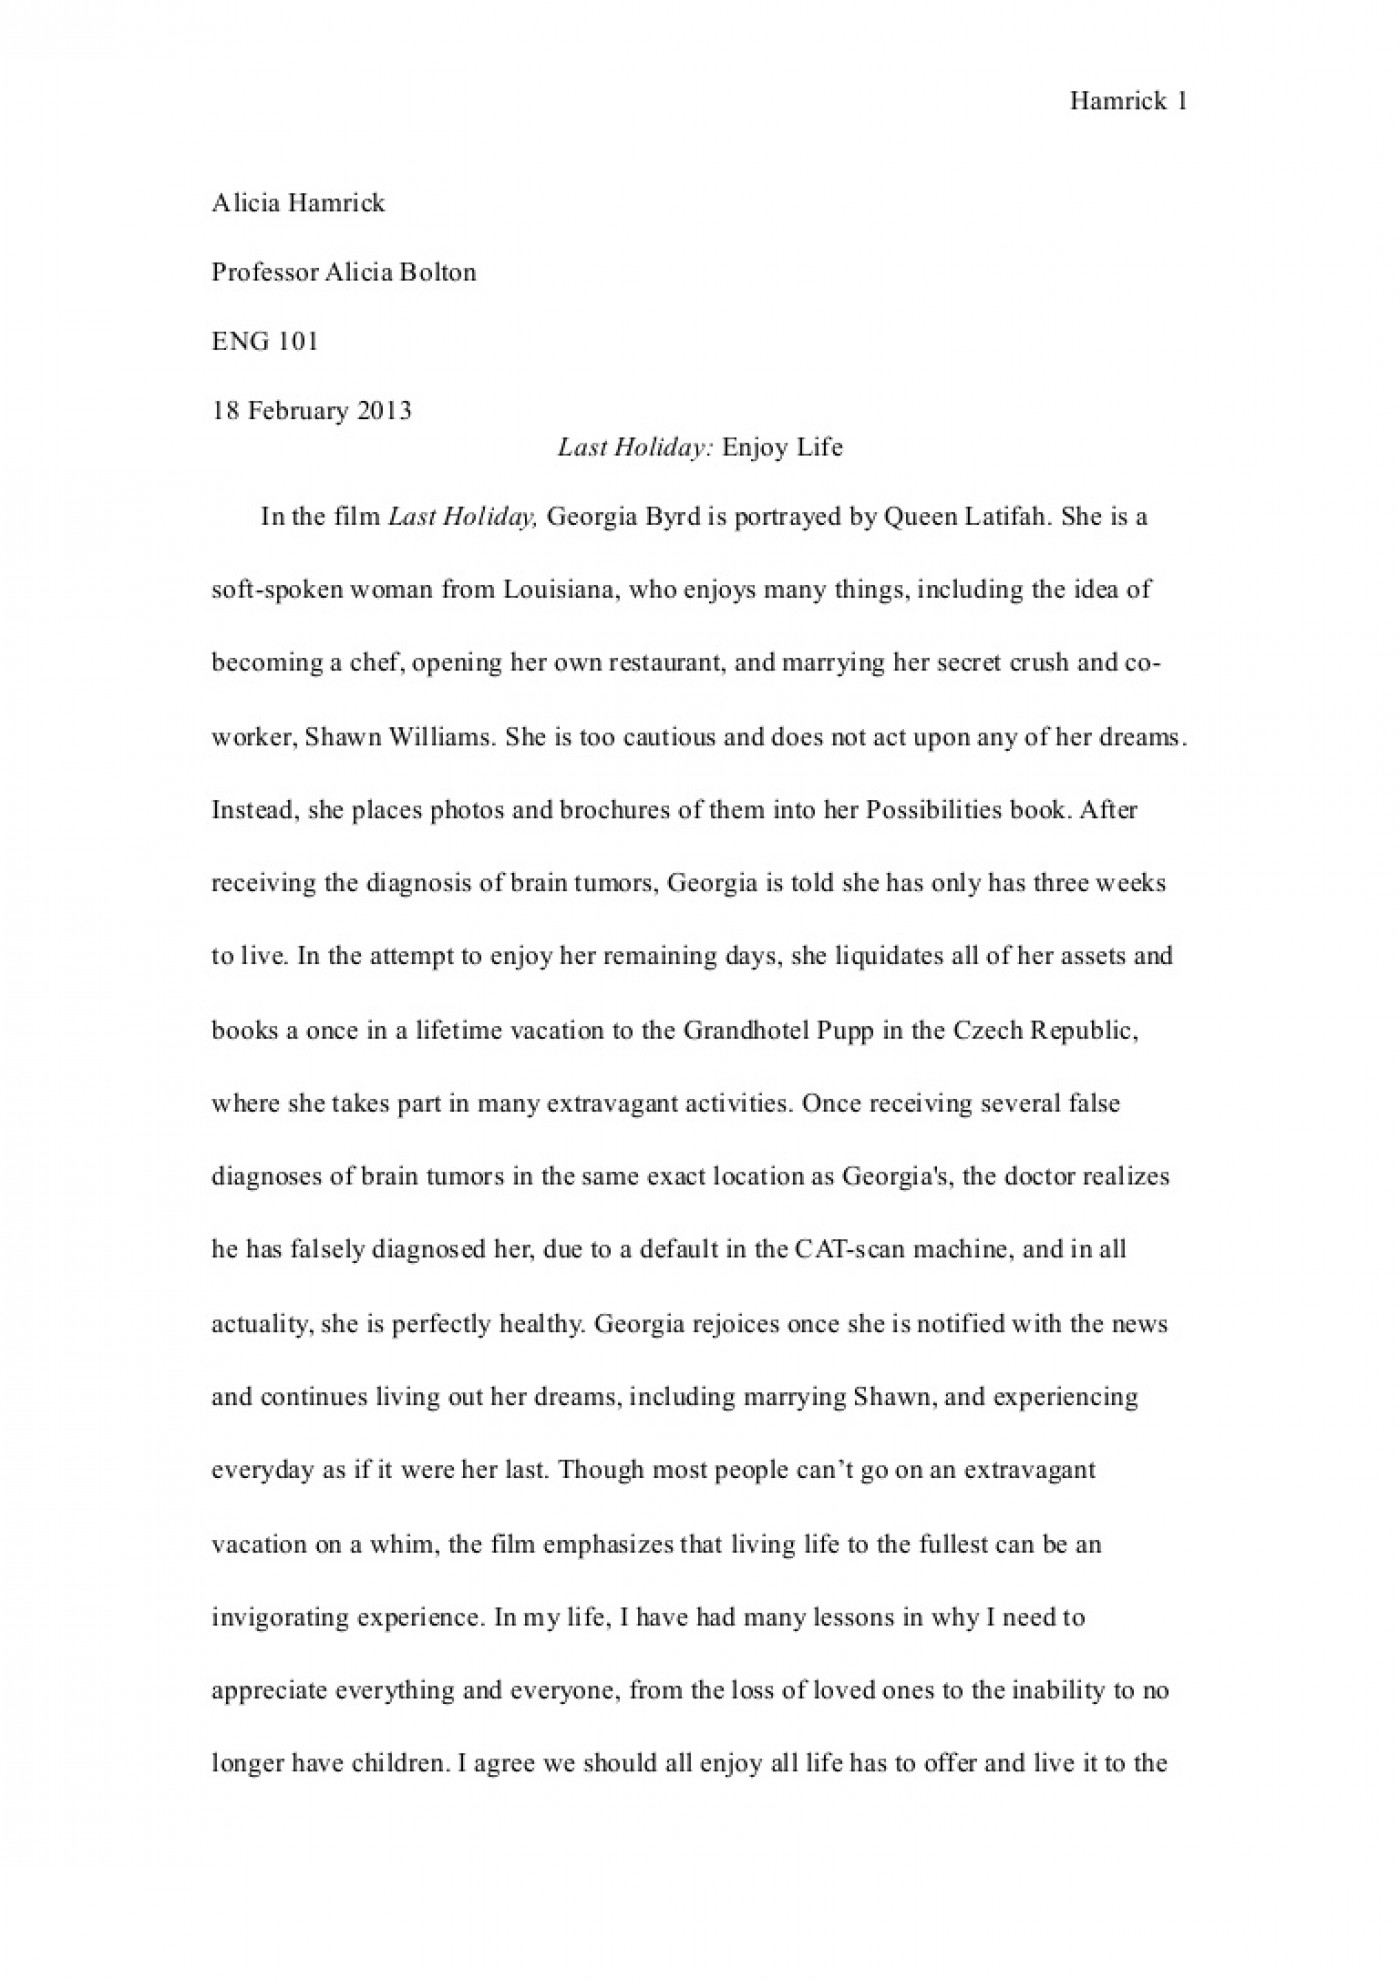 007 Essay Example On Achieving Goal Eng101essay1revisied Phpapp02 Thumbnail Stunning A Narrative 1400